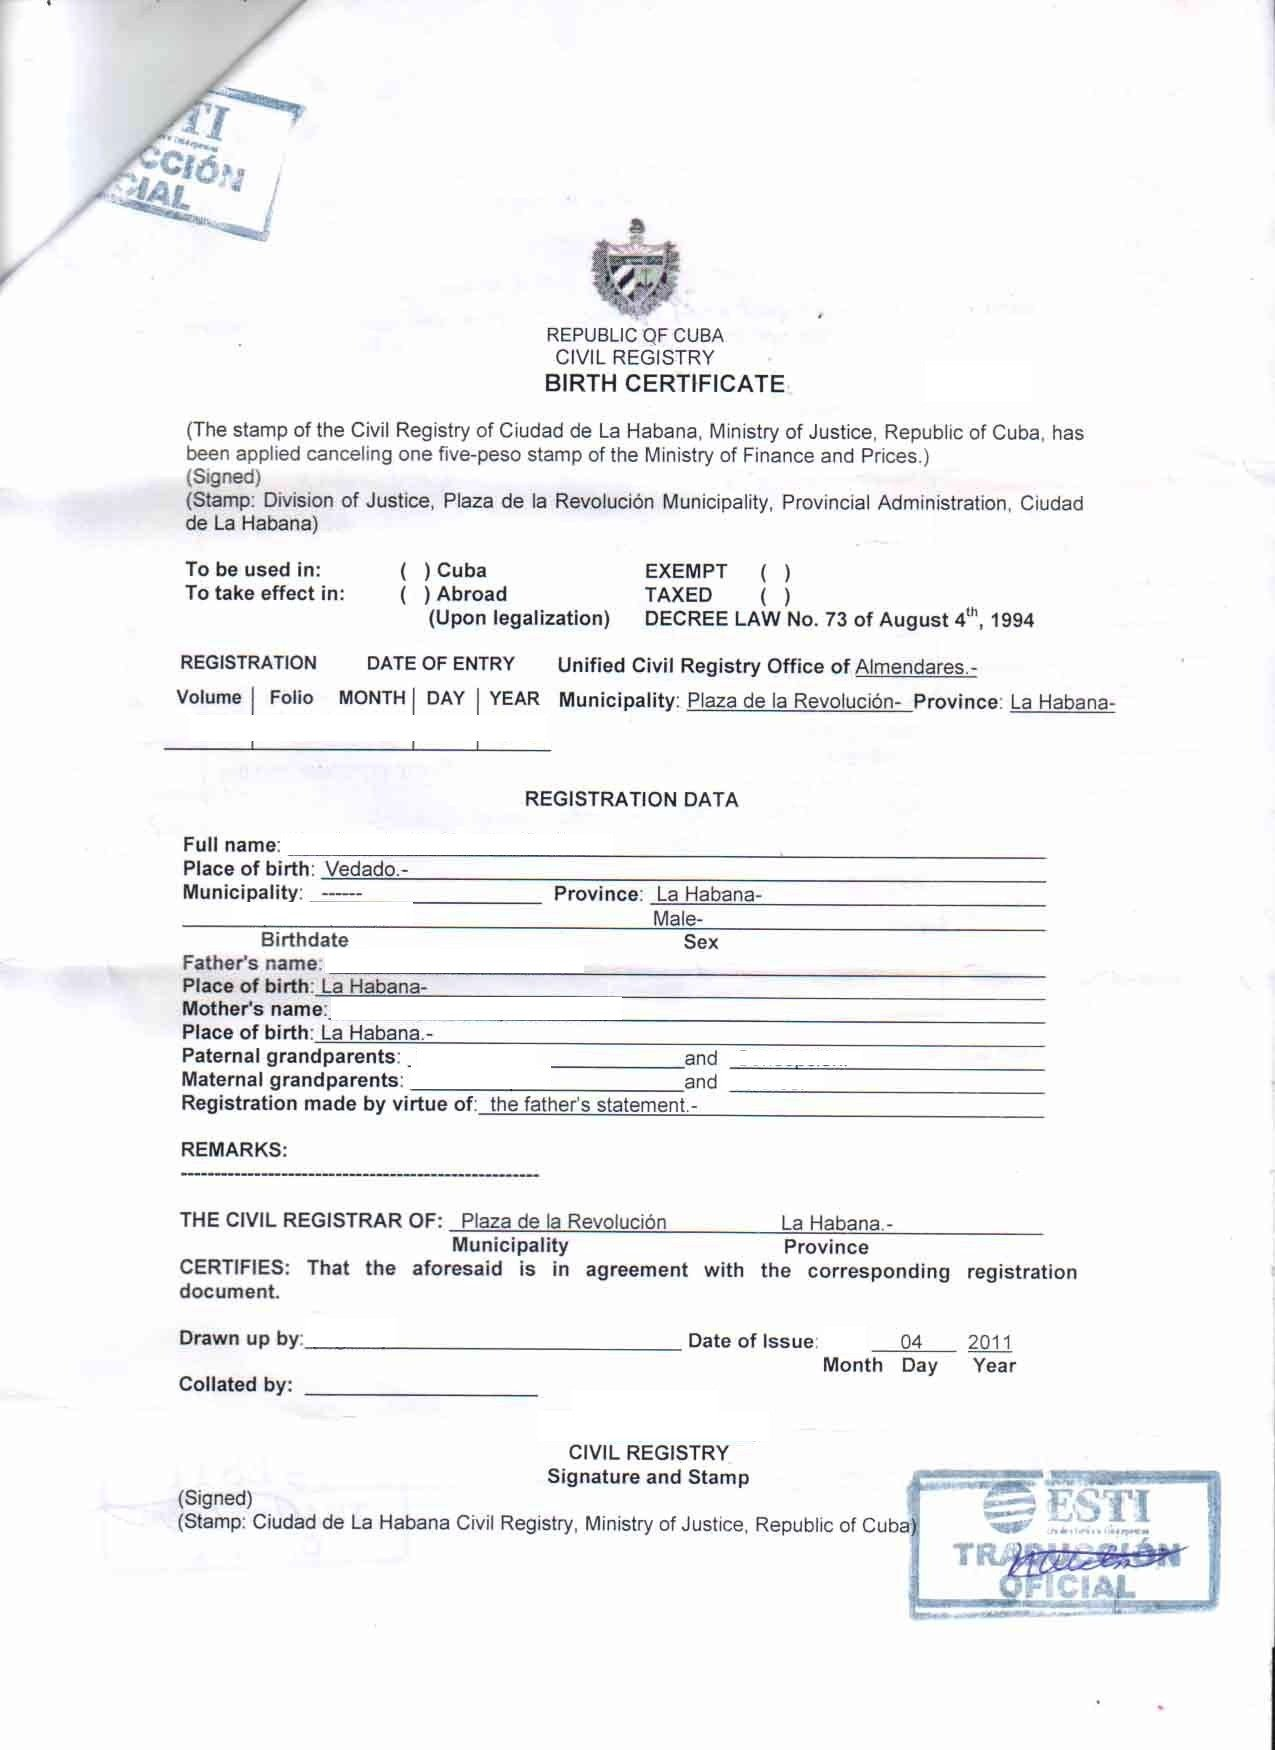 Translation Of Divorce Certificate Template Outsource Spanish Translation to Outsource2india